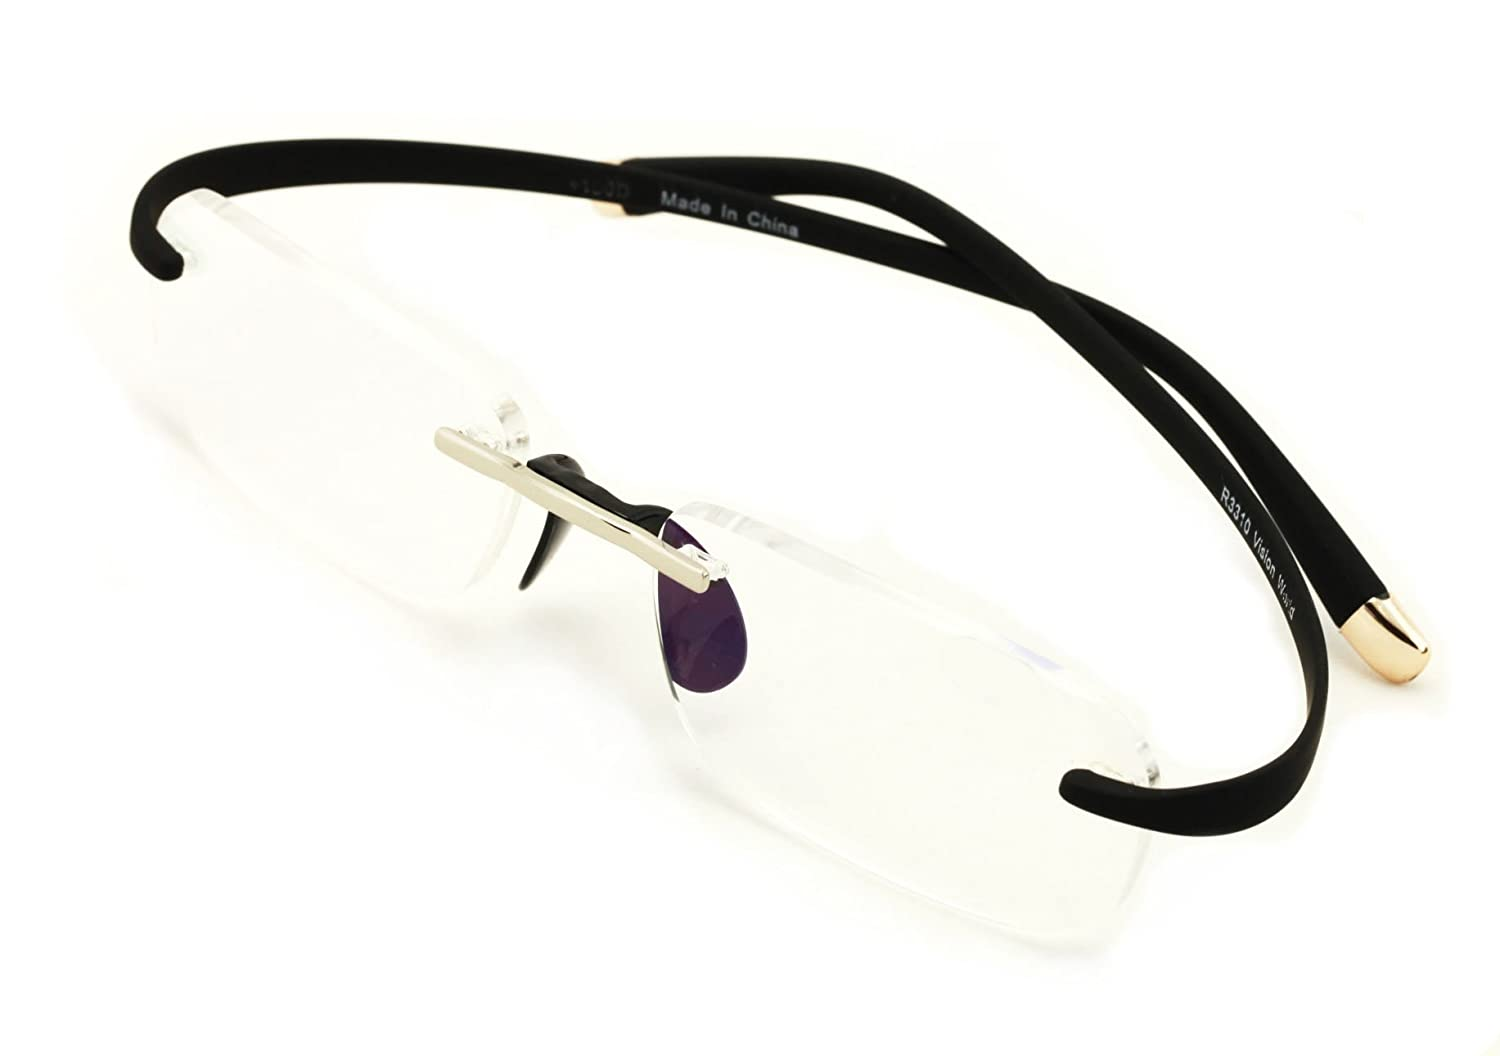 67e6b82c2283a Amazon.com  V.W.E. Rimless Lightweight Rectangle Memory Flex Frame Clear  Lens glasses RX Optical EyeGlasses (Black